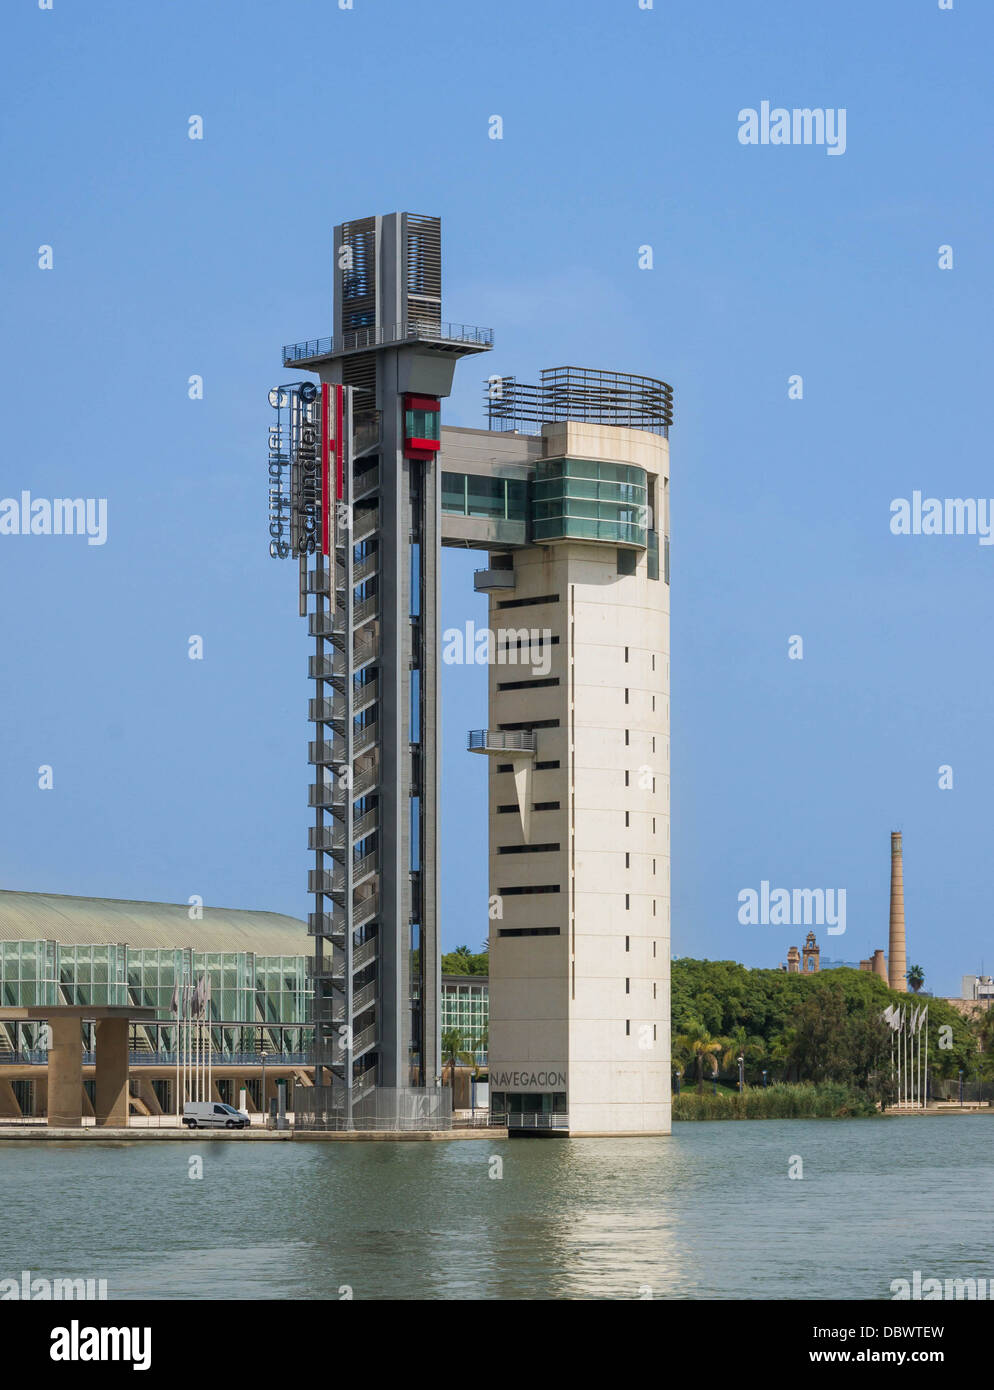 Tower and pavilion of the Navigation, World expo 1992, Guadalquivir river, Séville, Spain - Stock Image